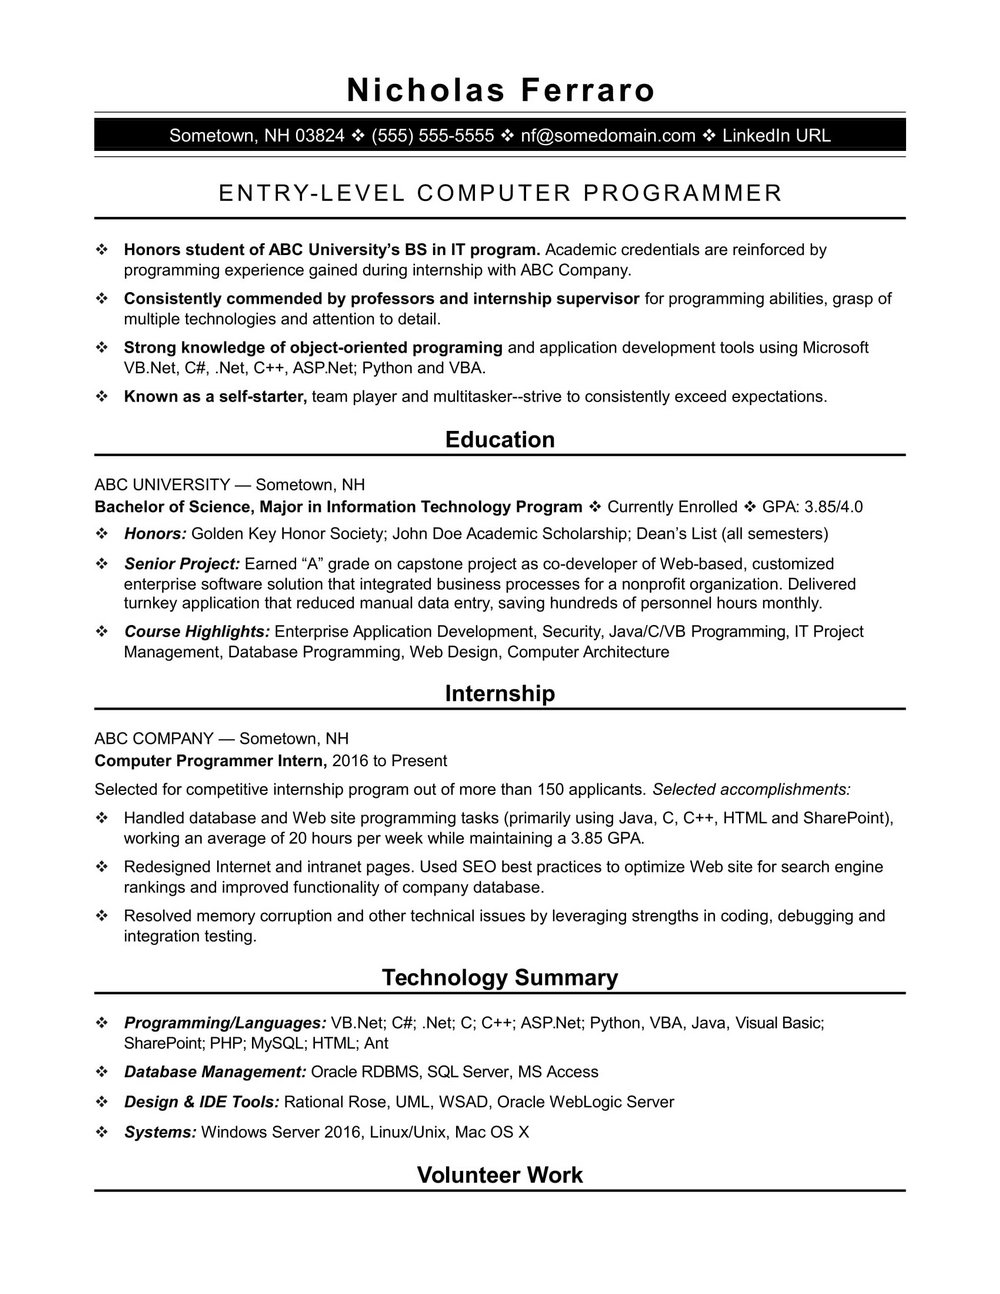 ruby on rails developer resume in usa